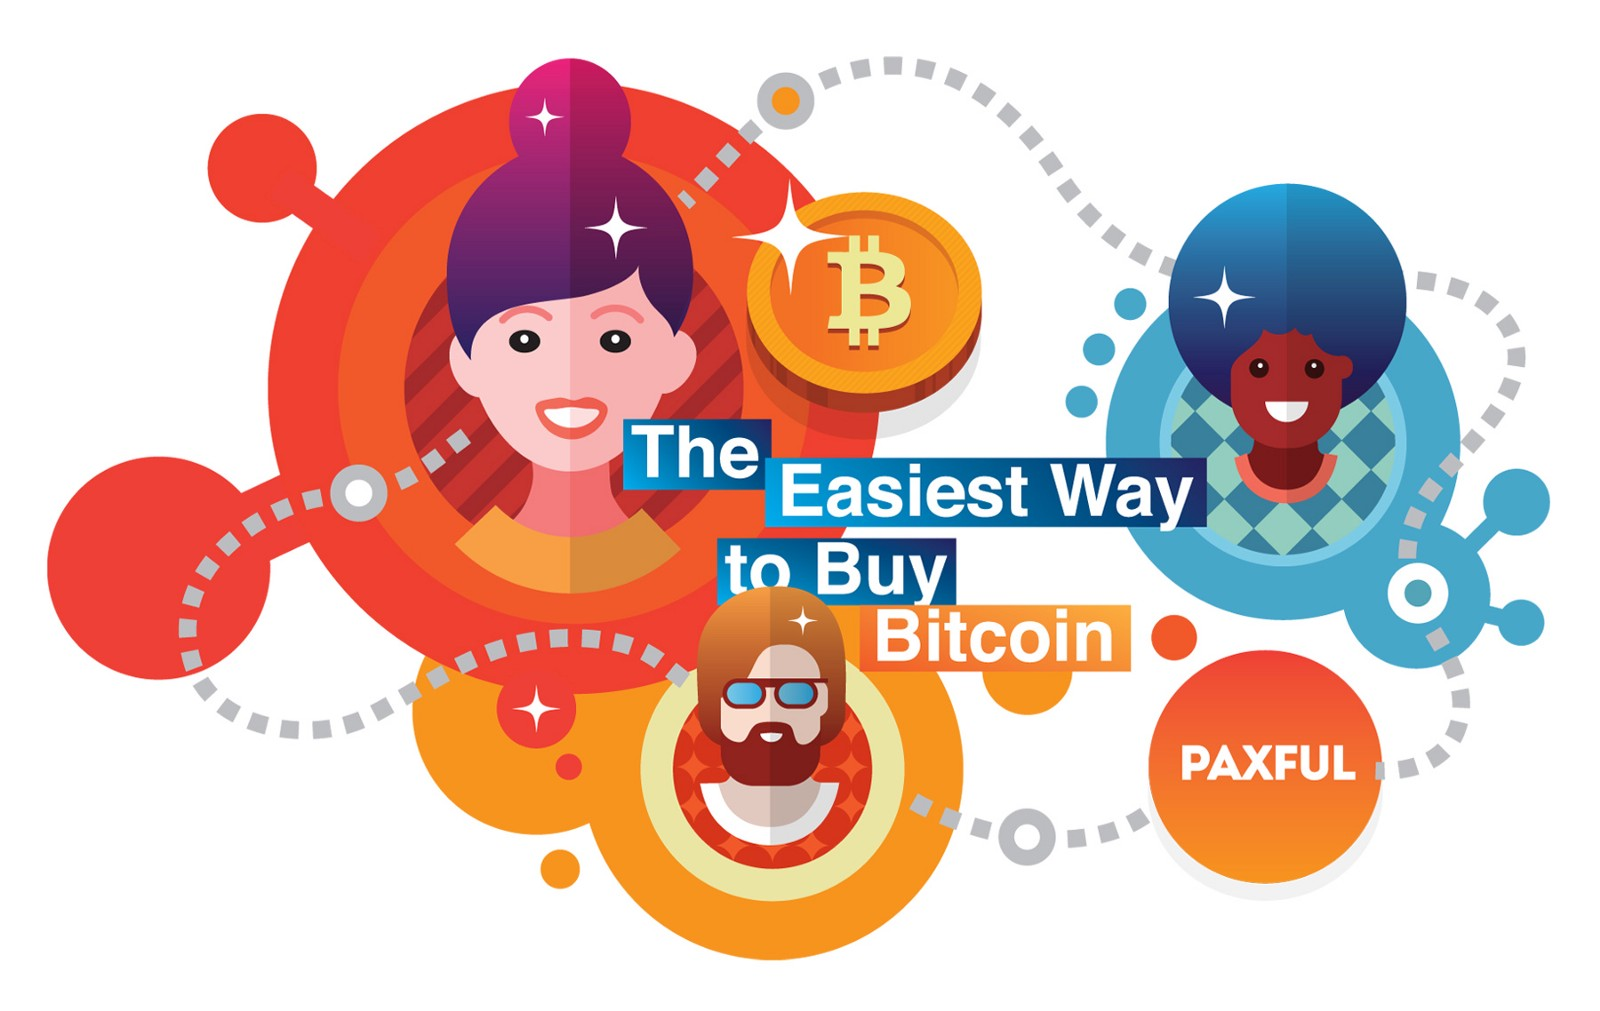 The easiest way to buy bitcoin paxful medium bitcoin has truly gone mainstream in the past few years its broken into the masses as fantastic as this is youd expect it to be really easy to get your ccuart Choice Image